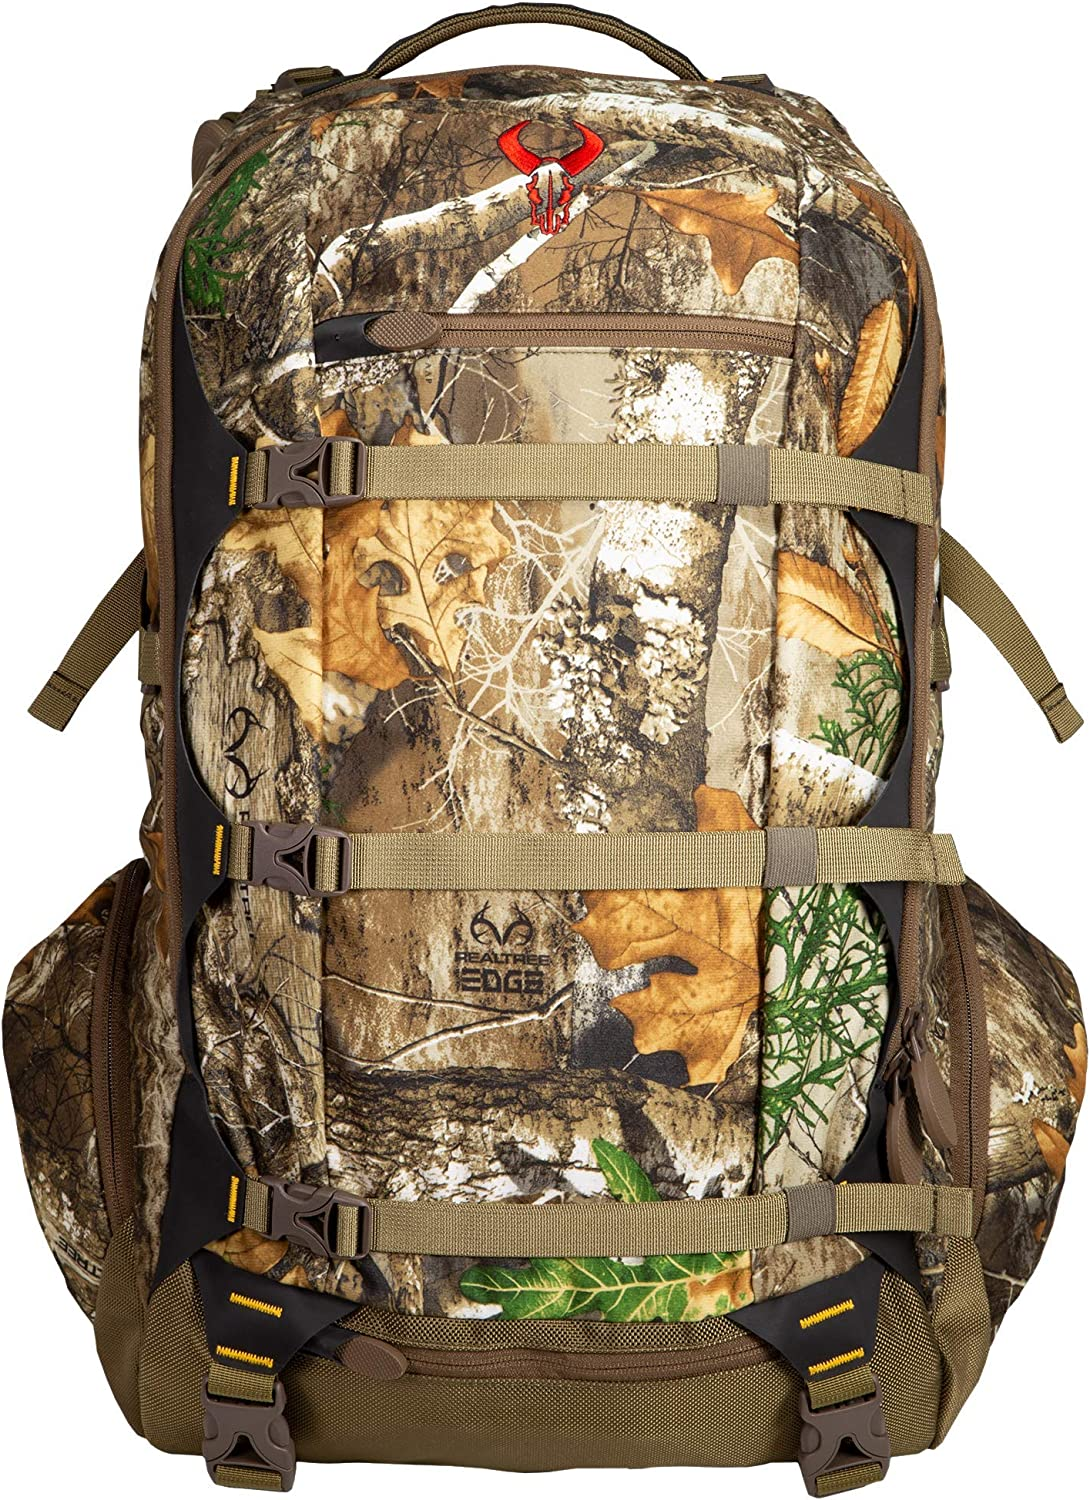 Badlands Diablo Dos Camouflage Hunting Backpack – Rifle Hydration Compatible, Realtree Camo